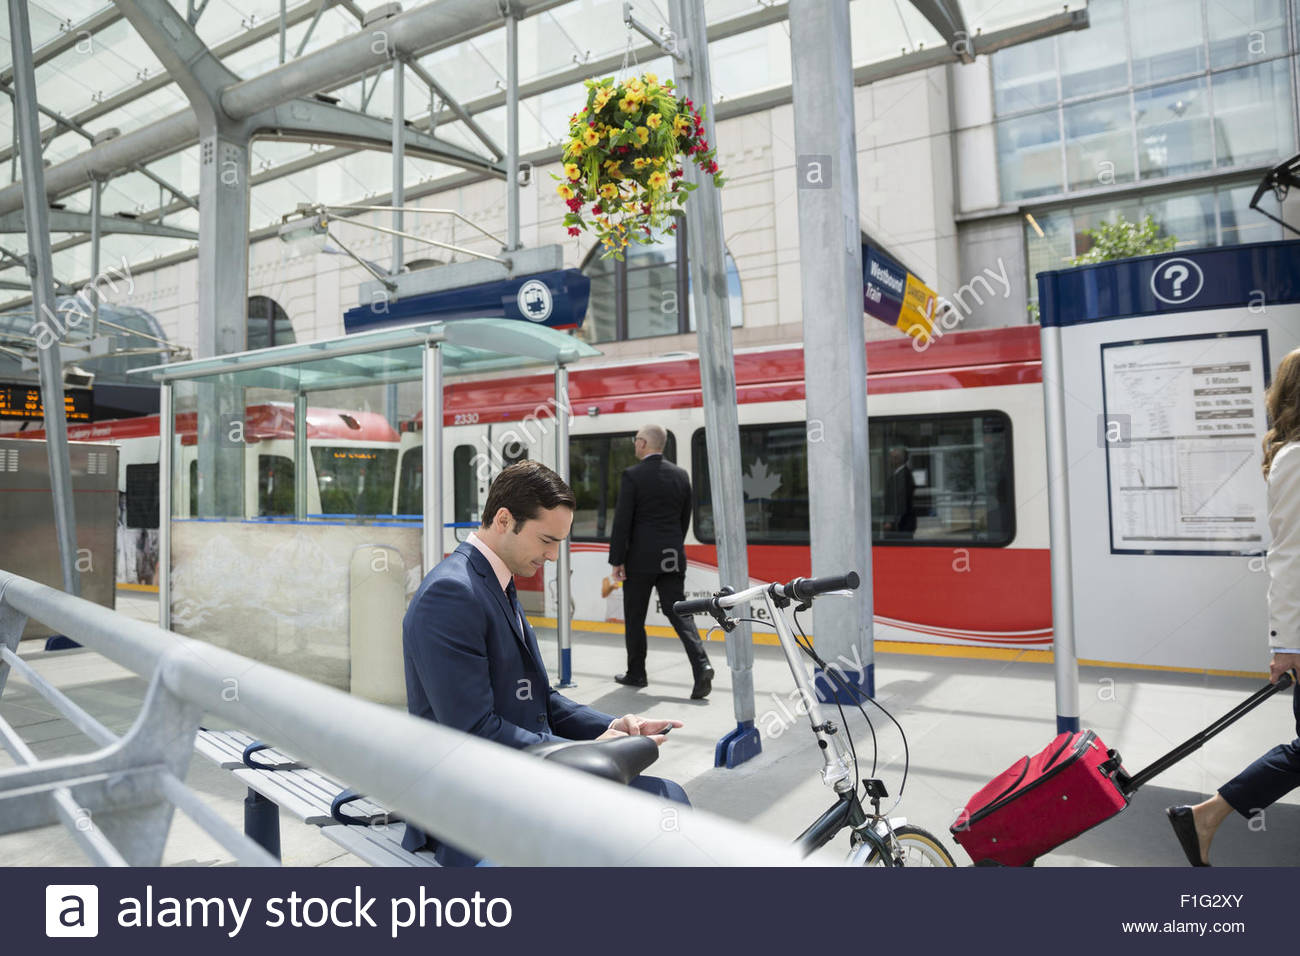 Businessman texting with cell phone at trains station - Stock Image